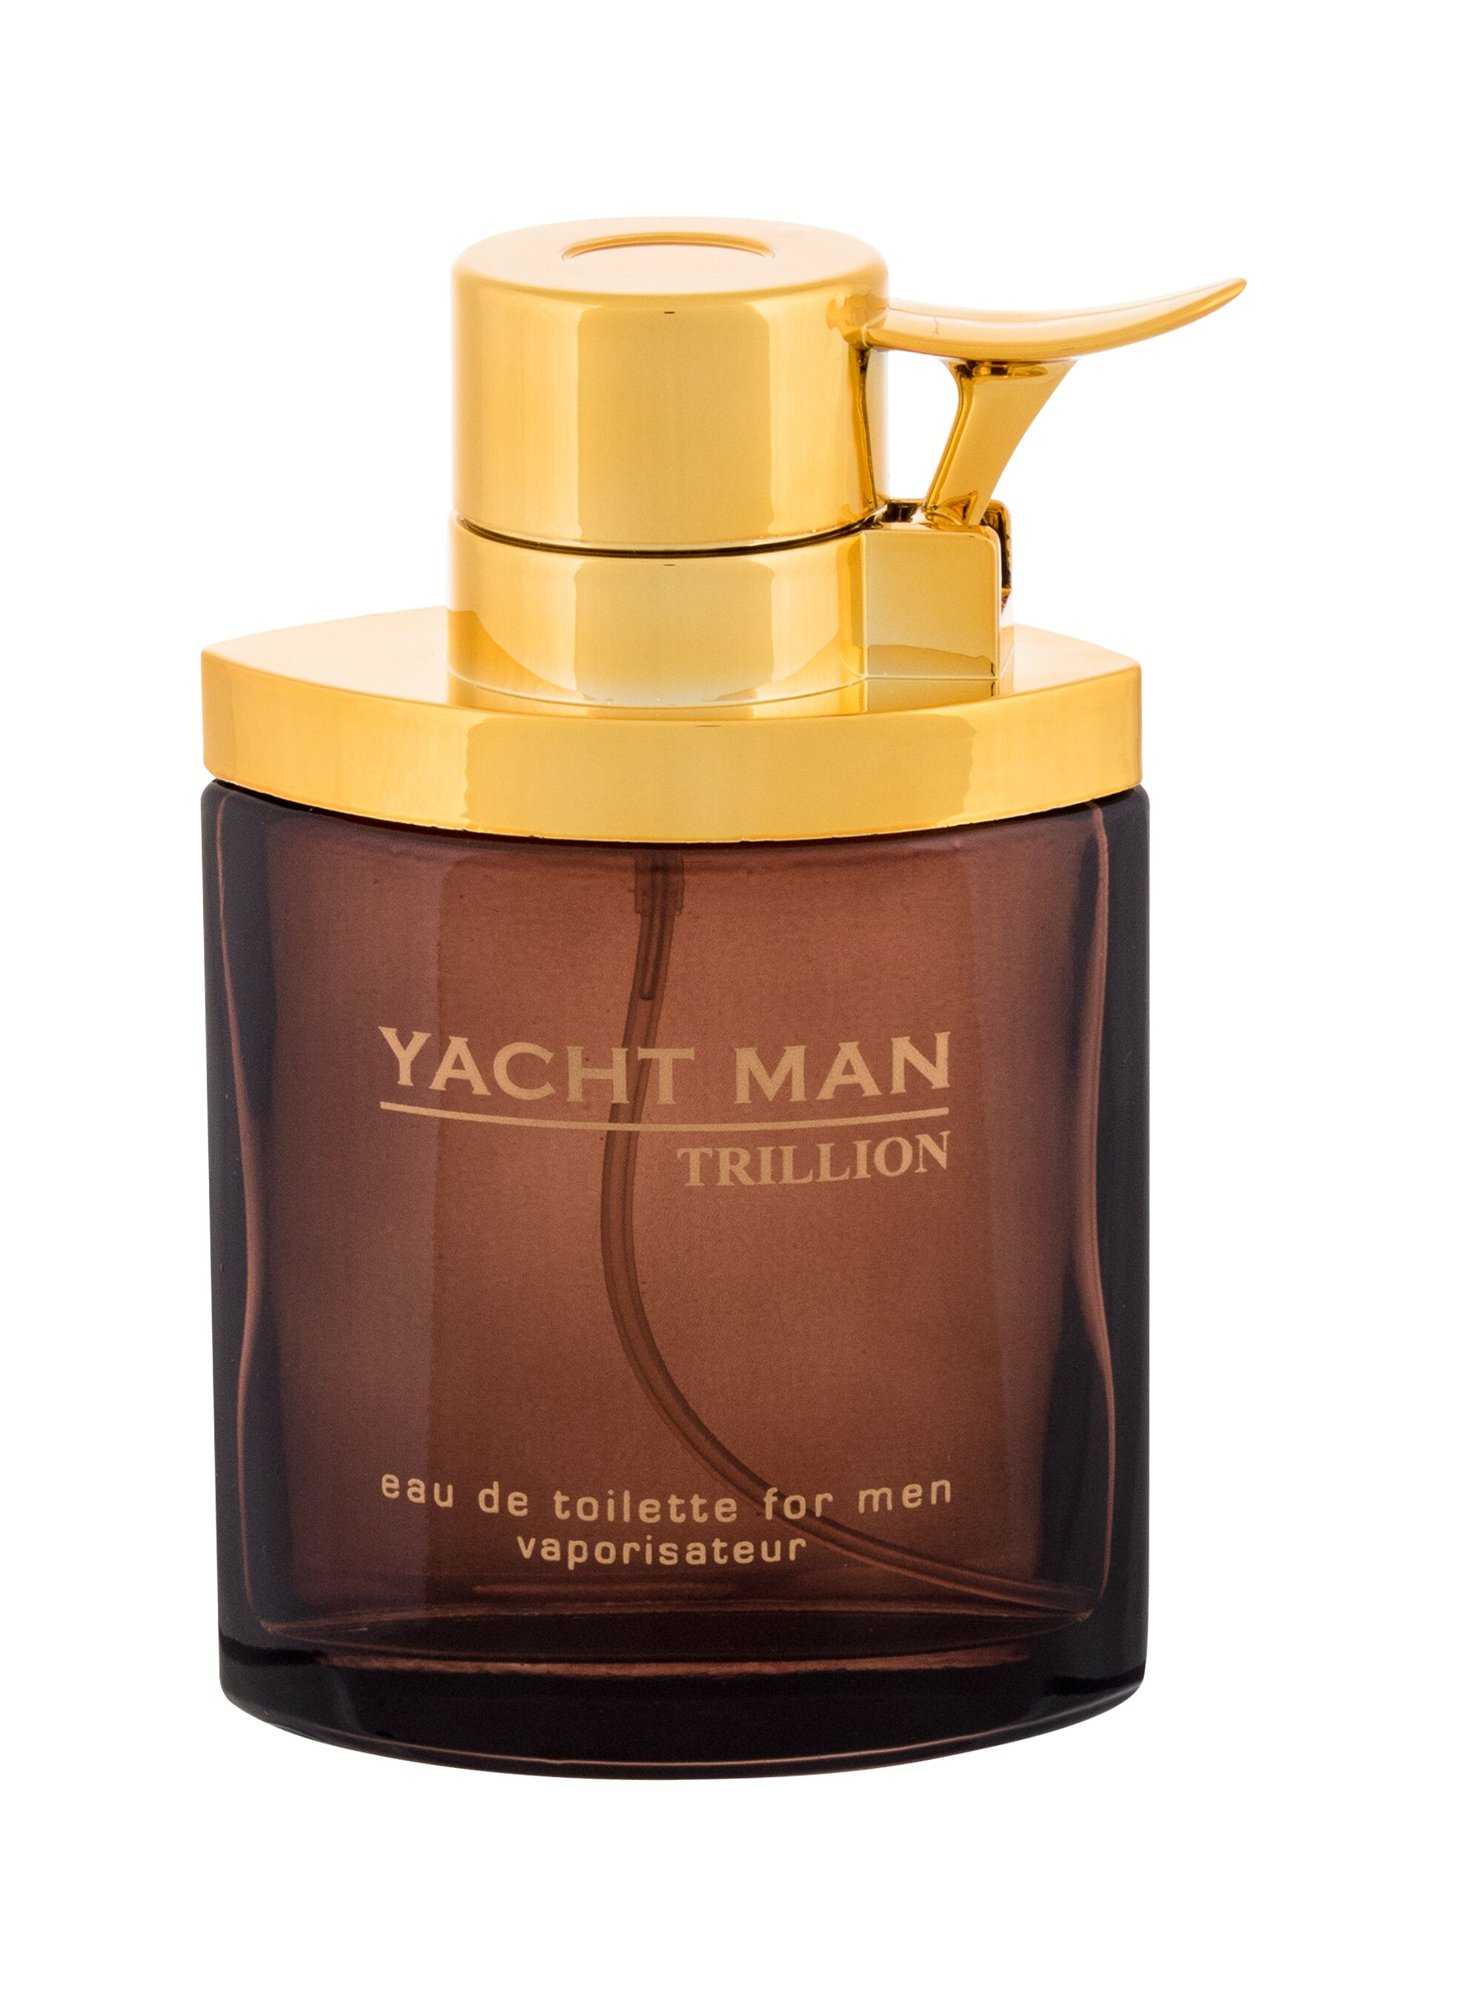 Myrurgia Yacht Man Trillion, edt 100ml